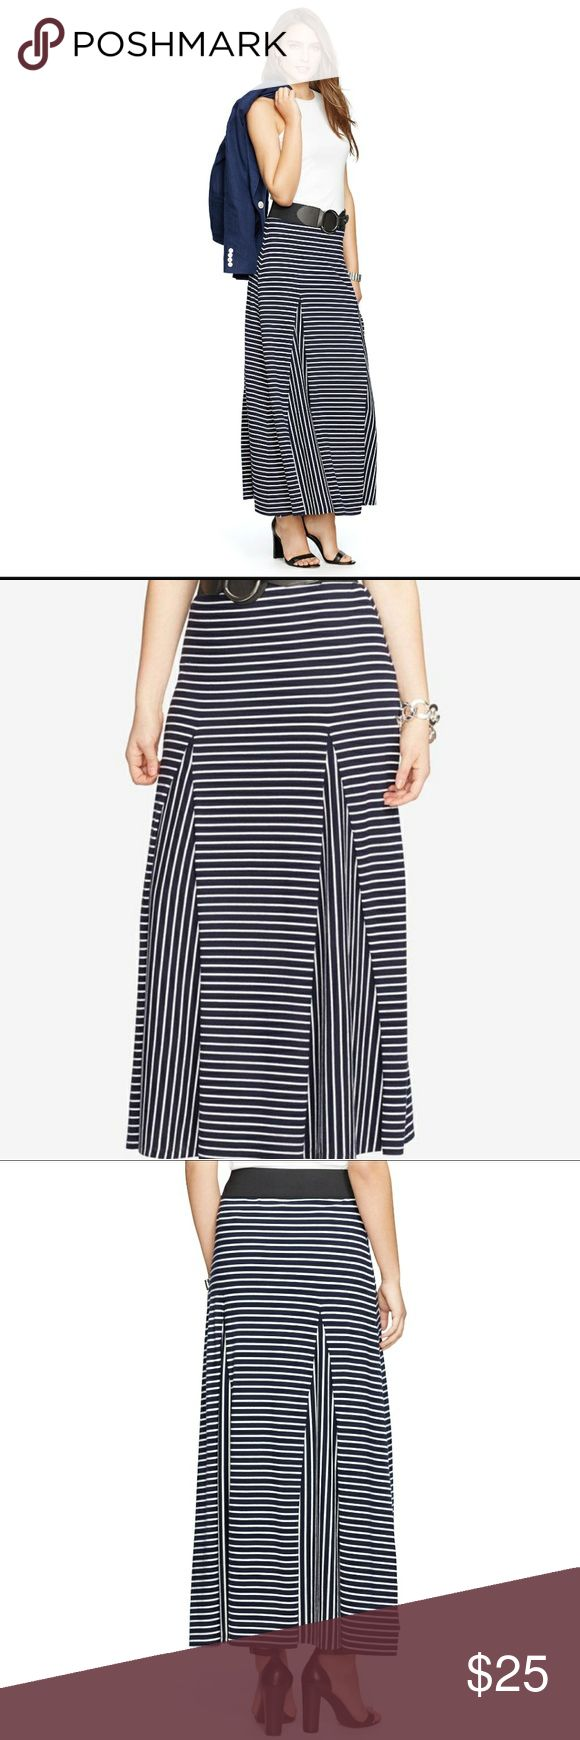 Ralph Lauren Long Skirt See photo for details  Size: 3x   Color Navy/ White strips    Material  56% Cotton  38% Modal  6% Elastane Ralph Lauren Skirts